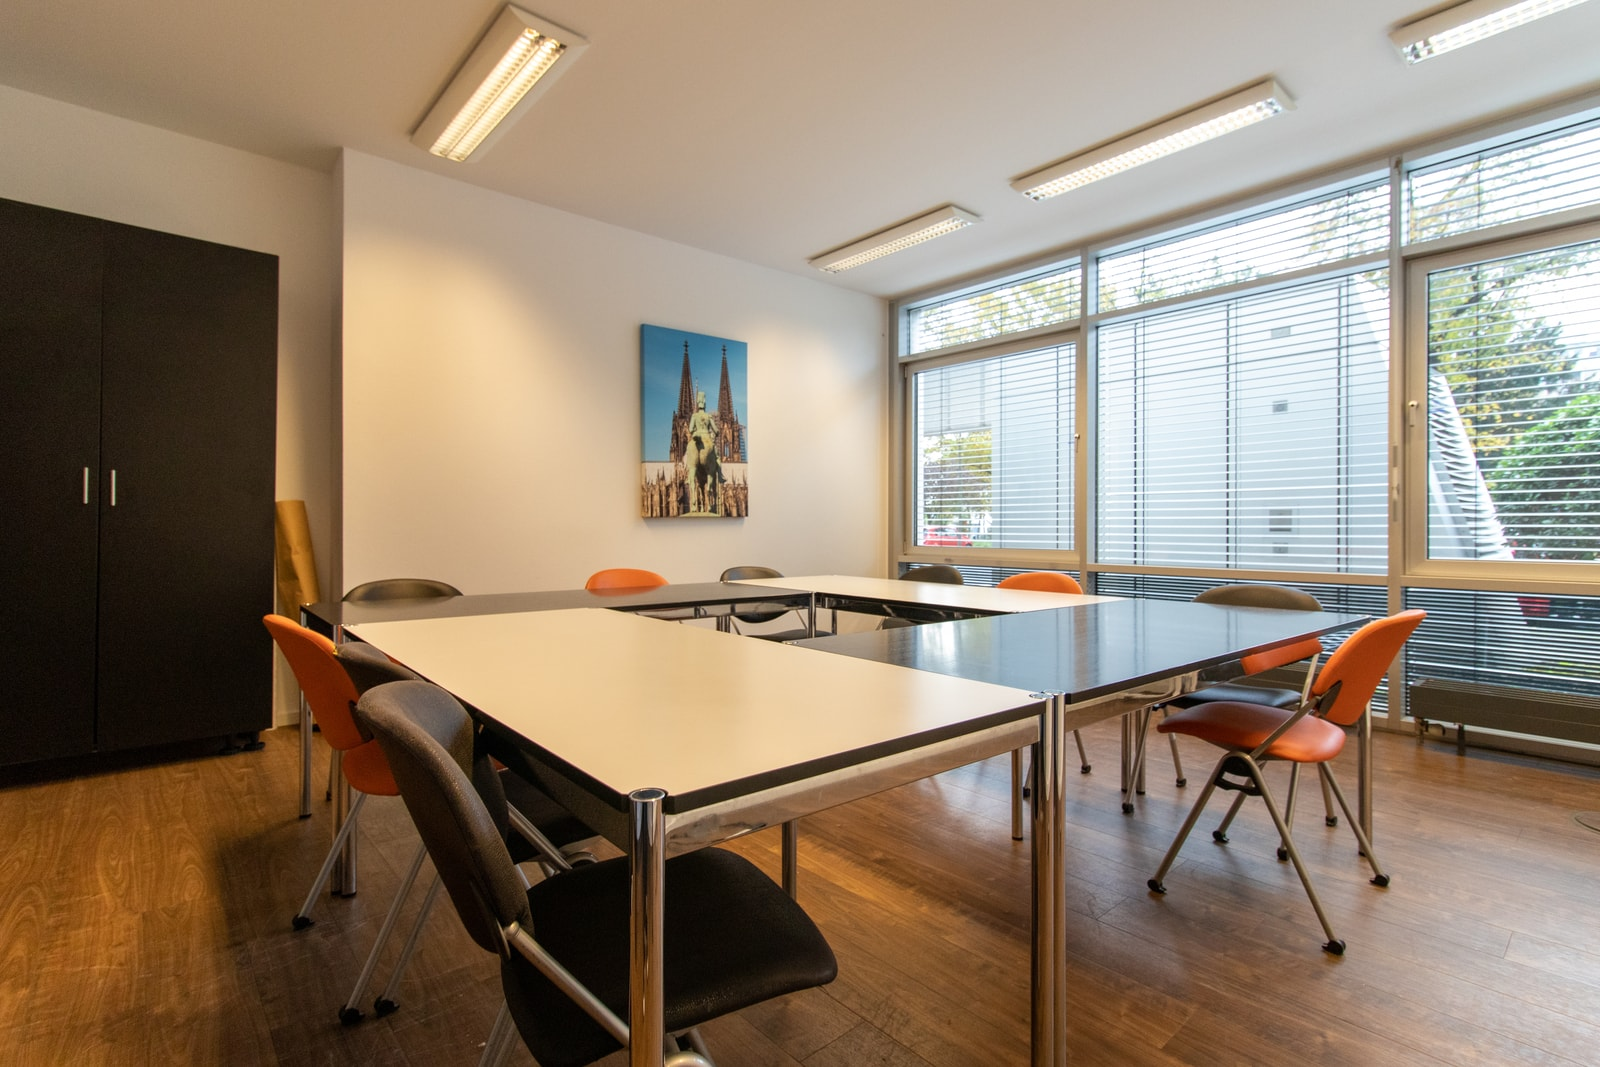 square meeting room Theodor-Heuss-Ring 23